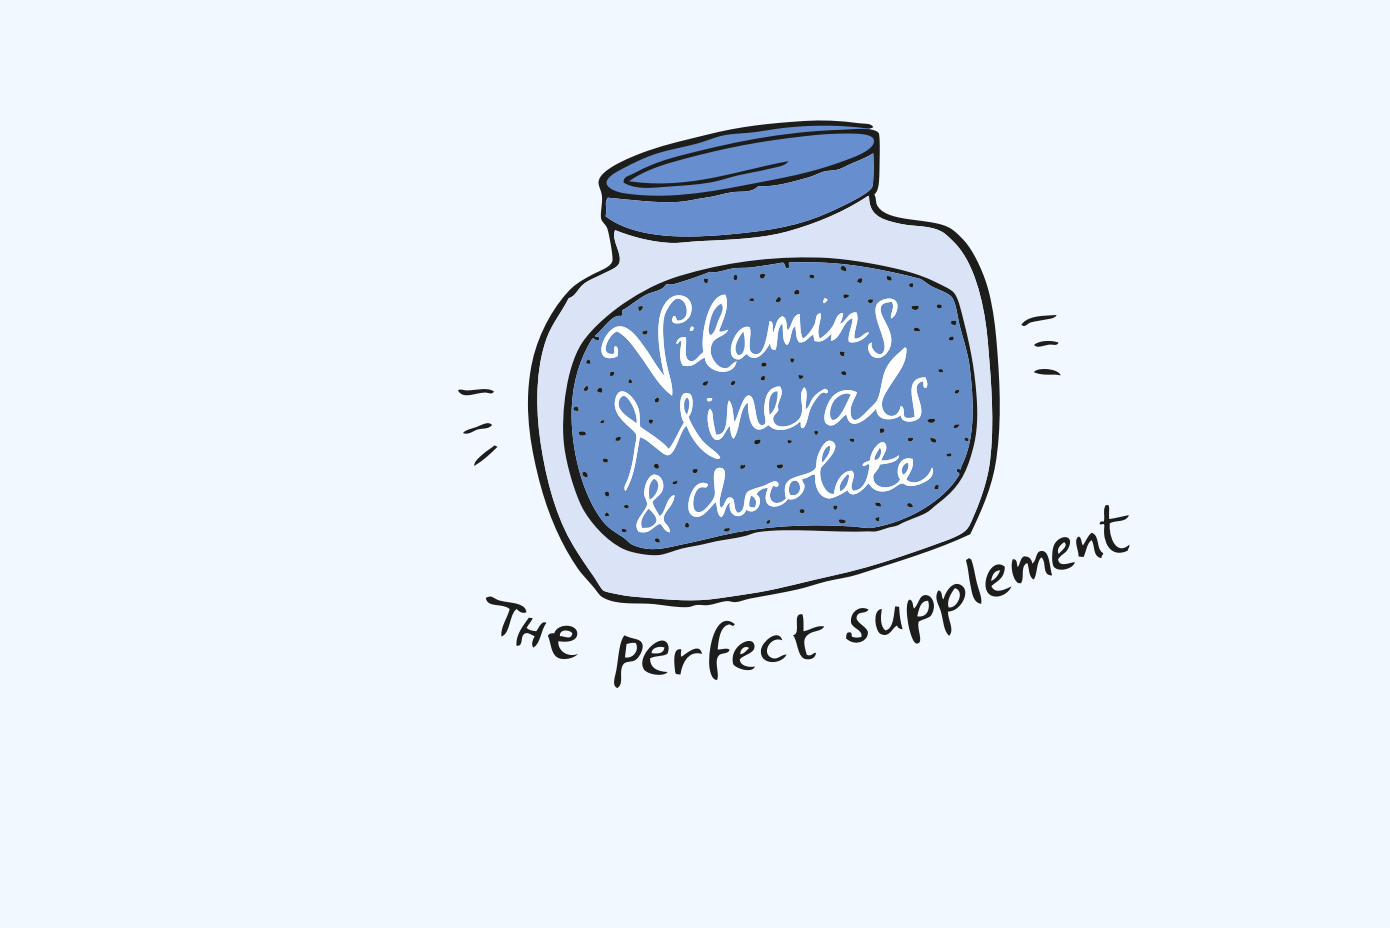 Should I take a vitamin supplement while pregnant? And what vitamins are safe for me and baby?